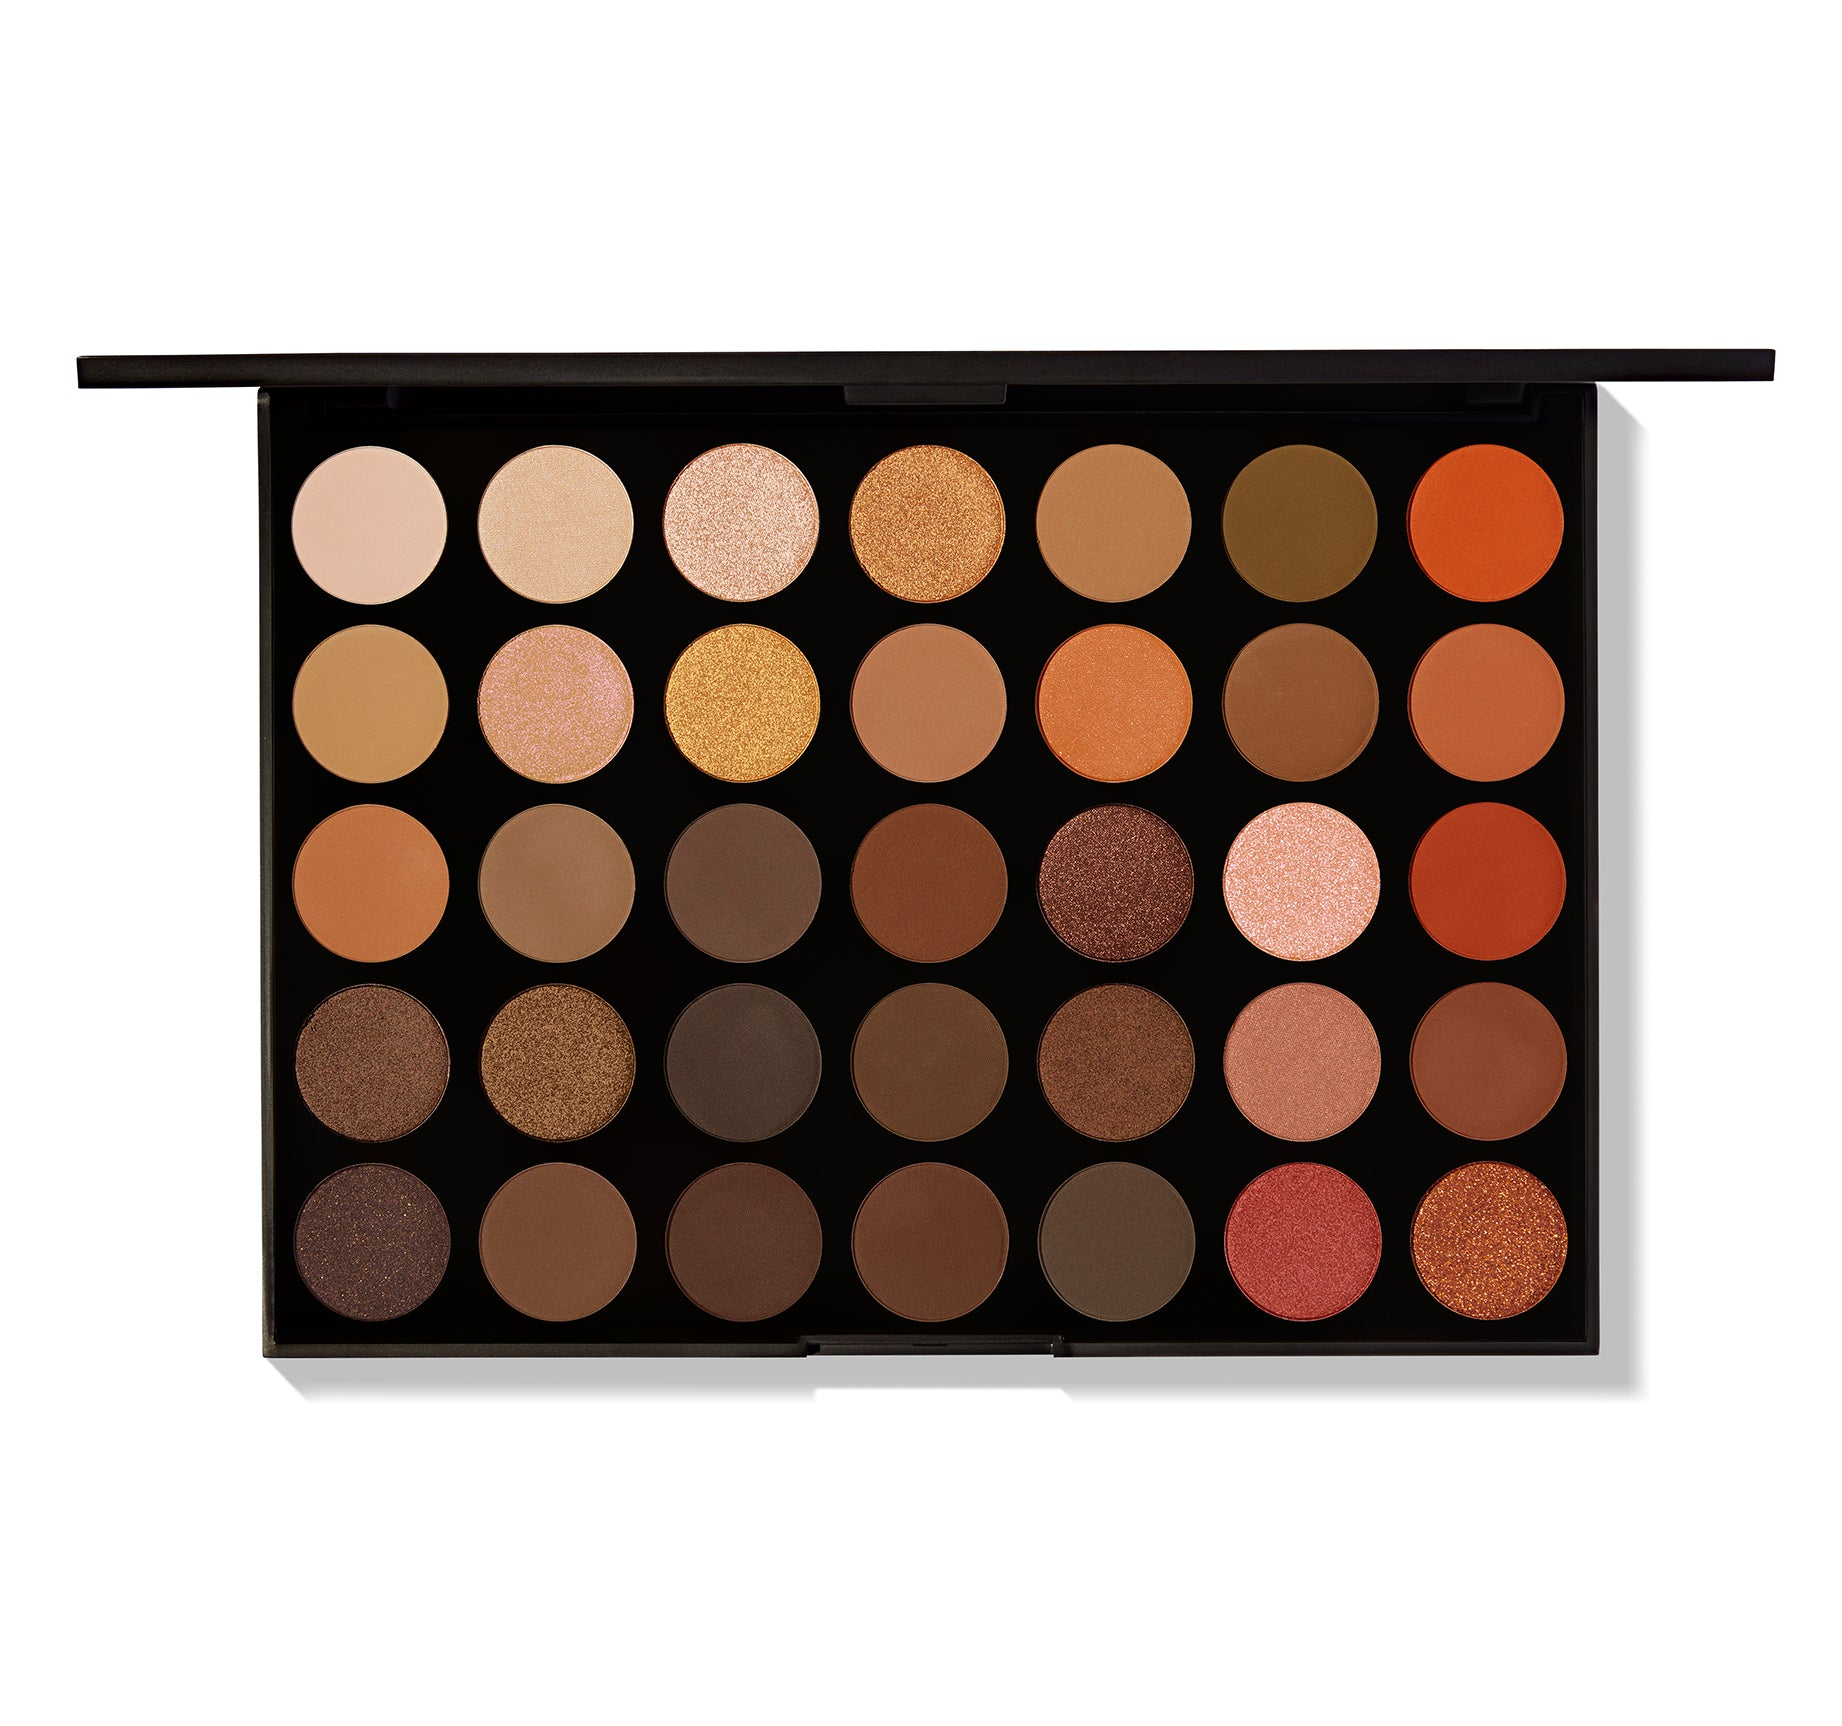 35o 35 Color Nature Glow Eyeshadow Palette Morphe Us